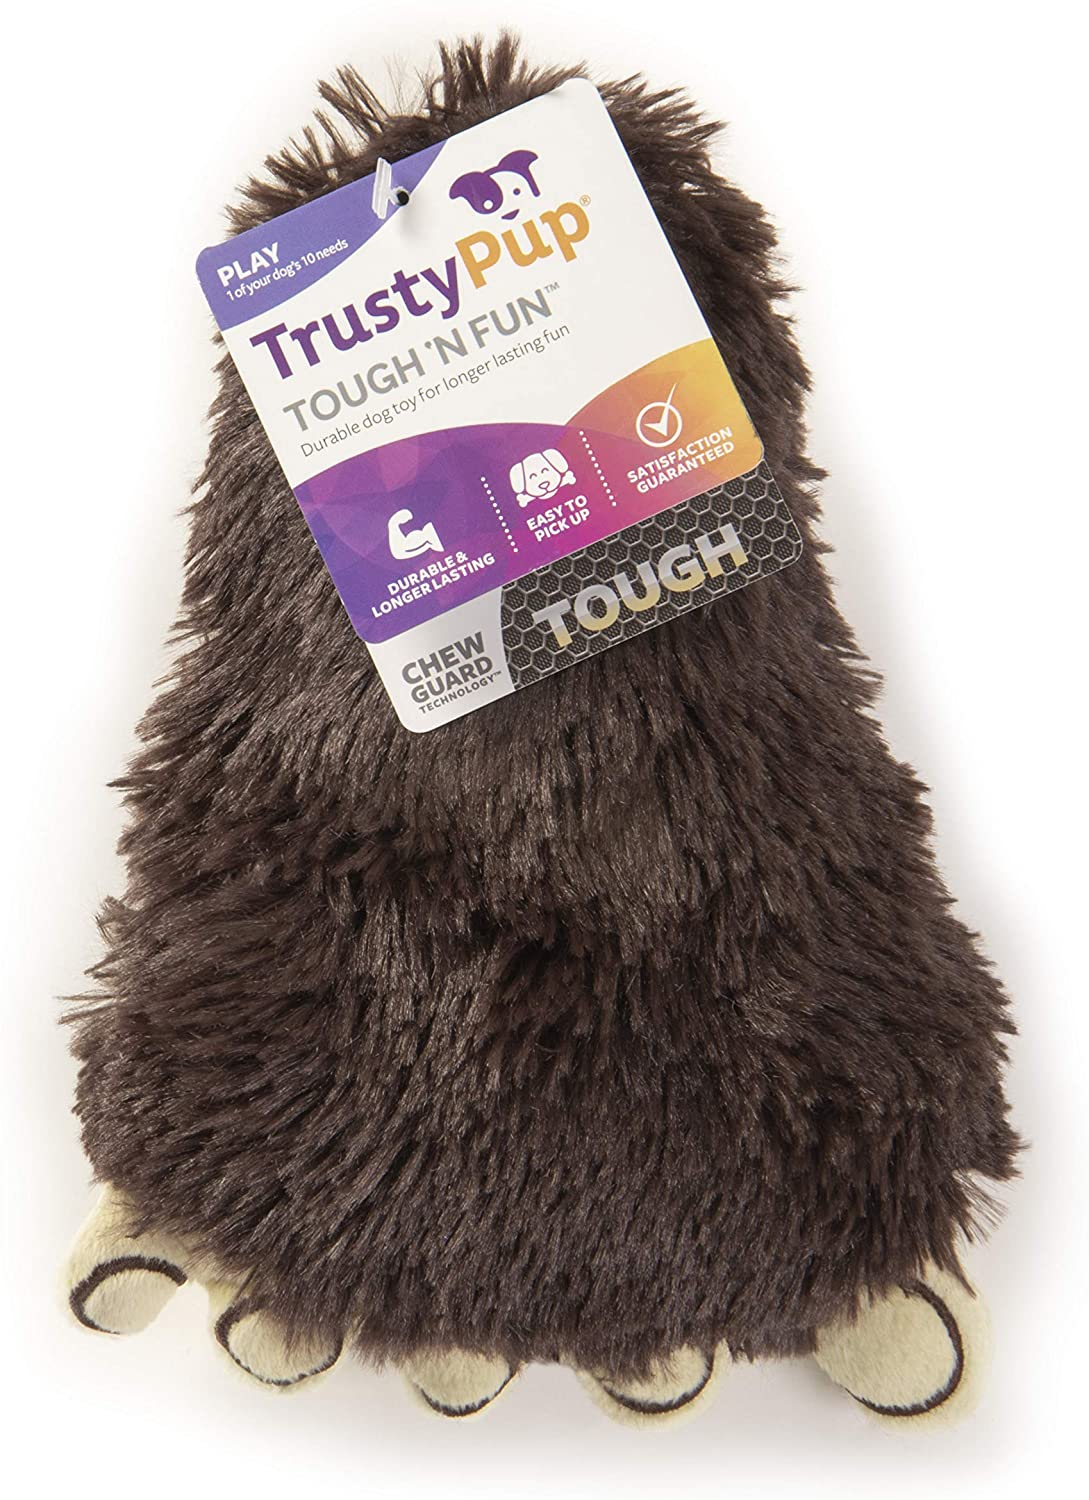 TrustyPup Feet with Chew Guard Technology Durable Plush Dog Toys with Squeakers